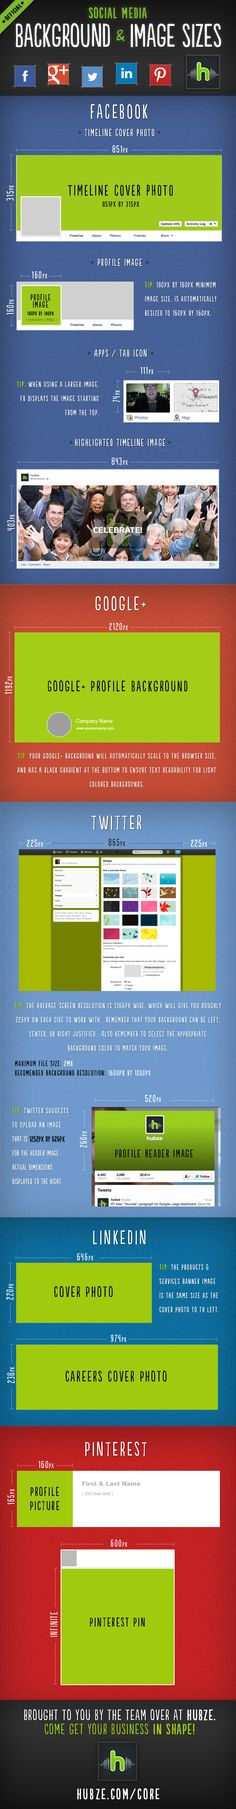 Thanks to Hubze for posting this infographic. Very helpfull! Hubze Infographic on Social platform images sizes